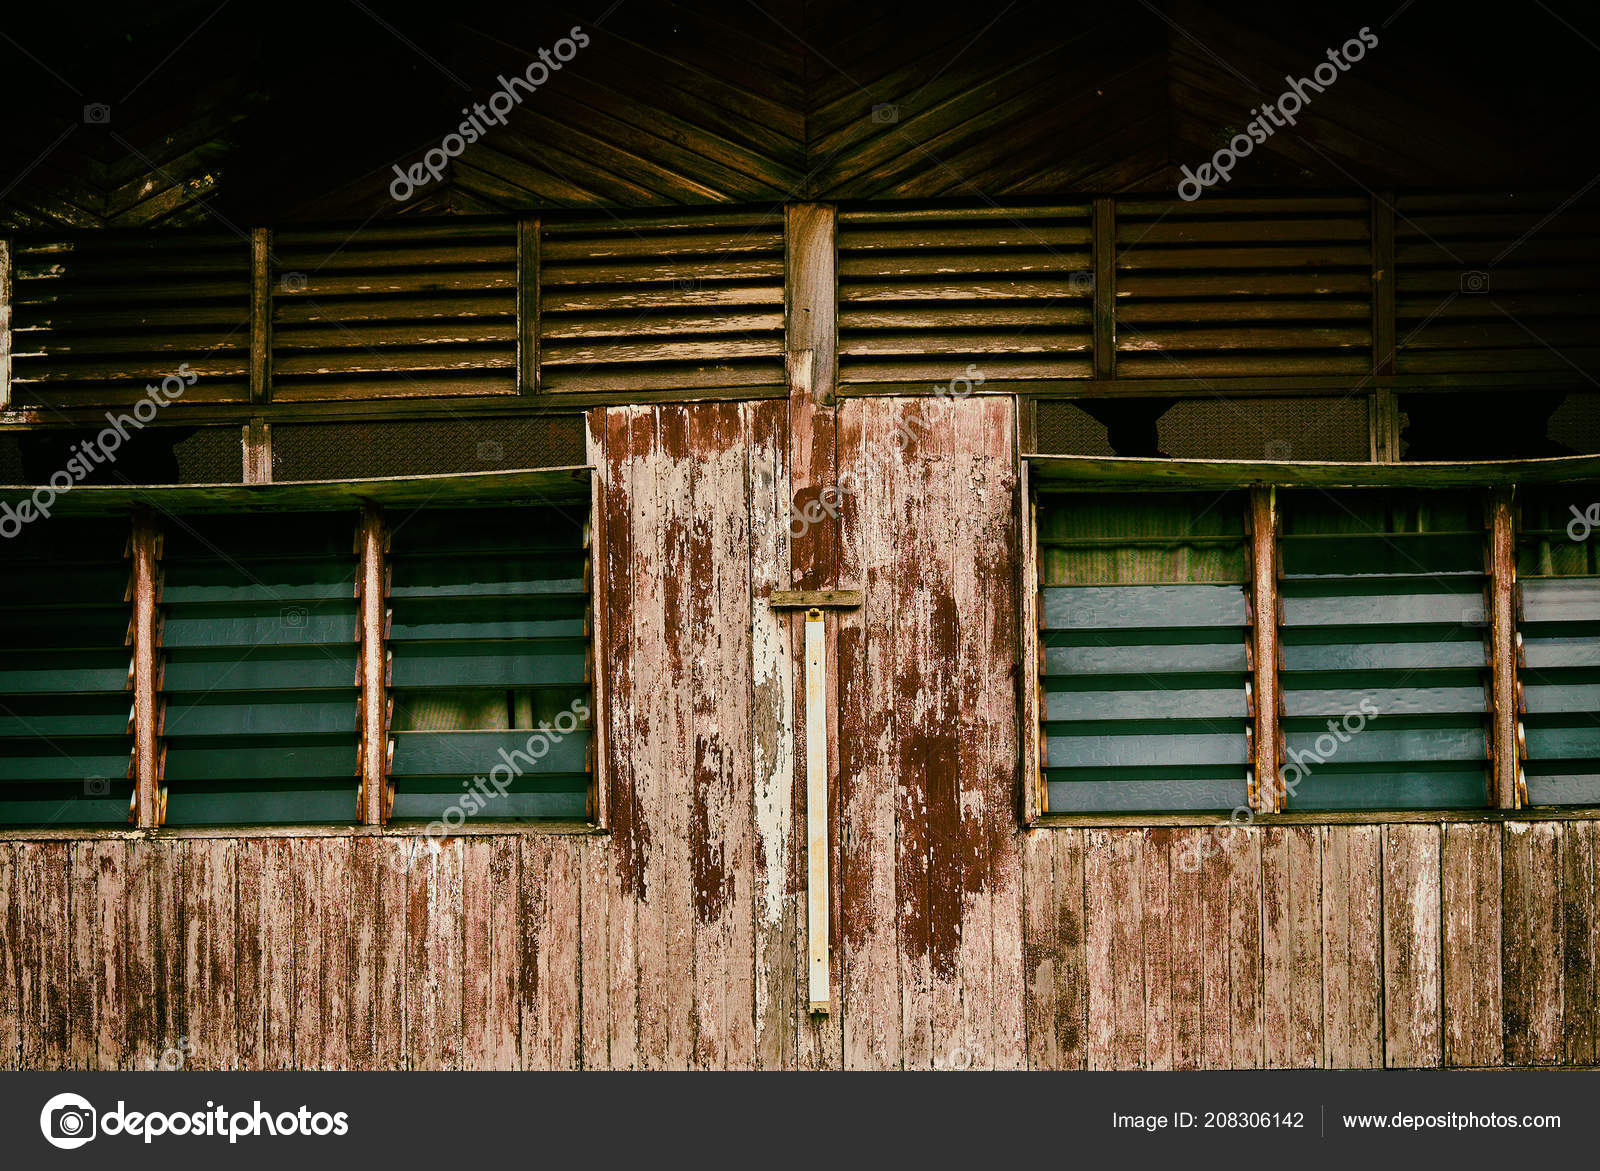 Weathered Old House Windows Peeling Paint Wooden Plank Abstract Background Stock Photo C Eskstock Gmail Com 208306142